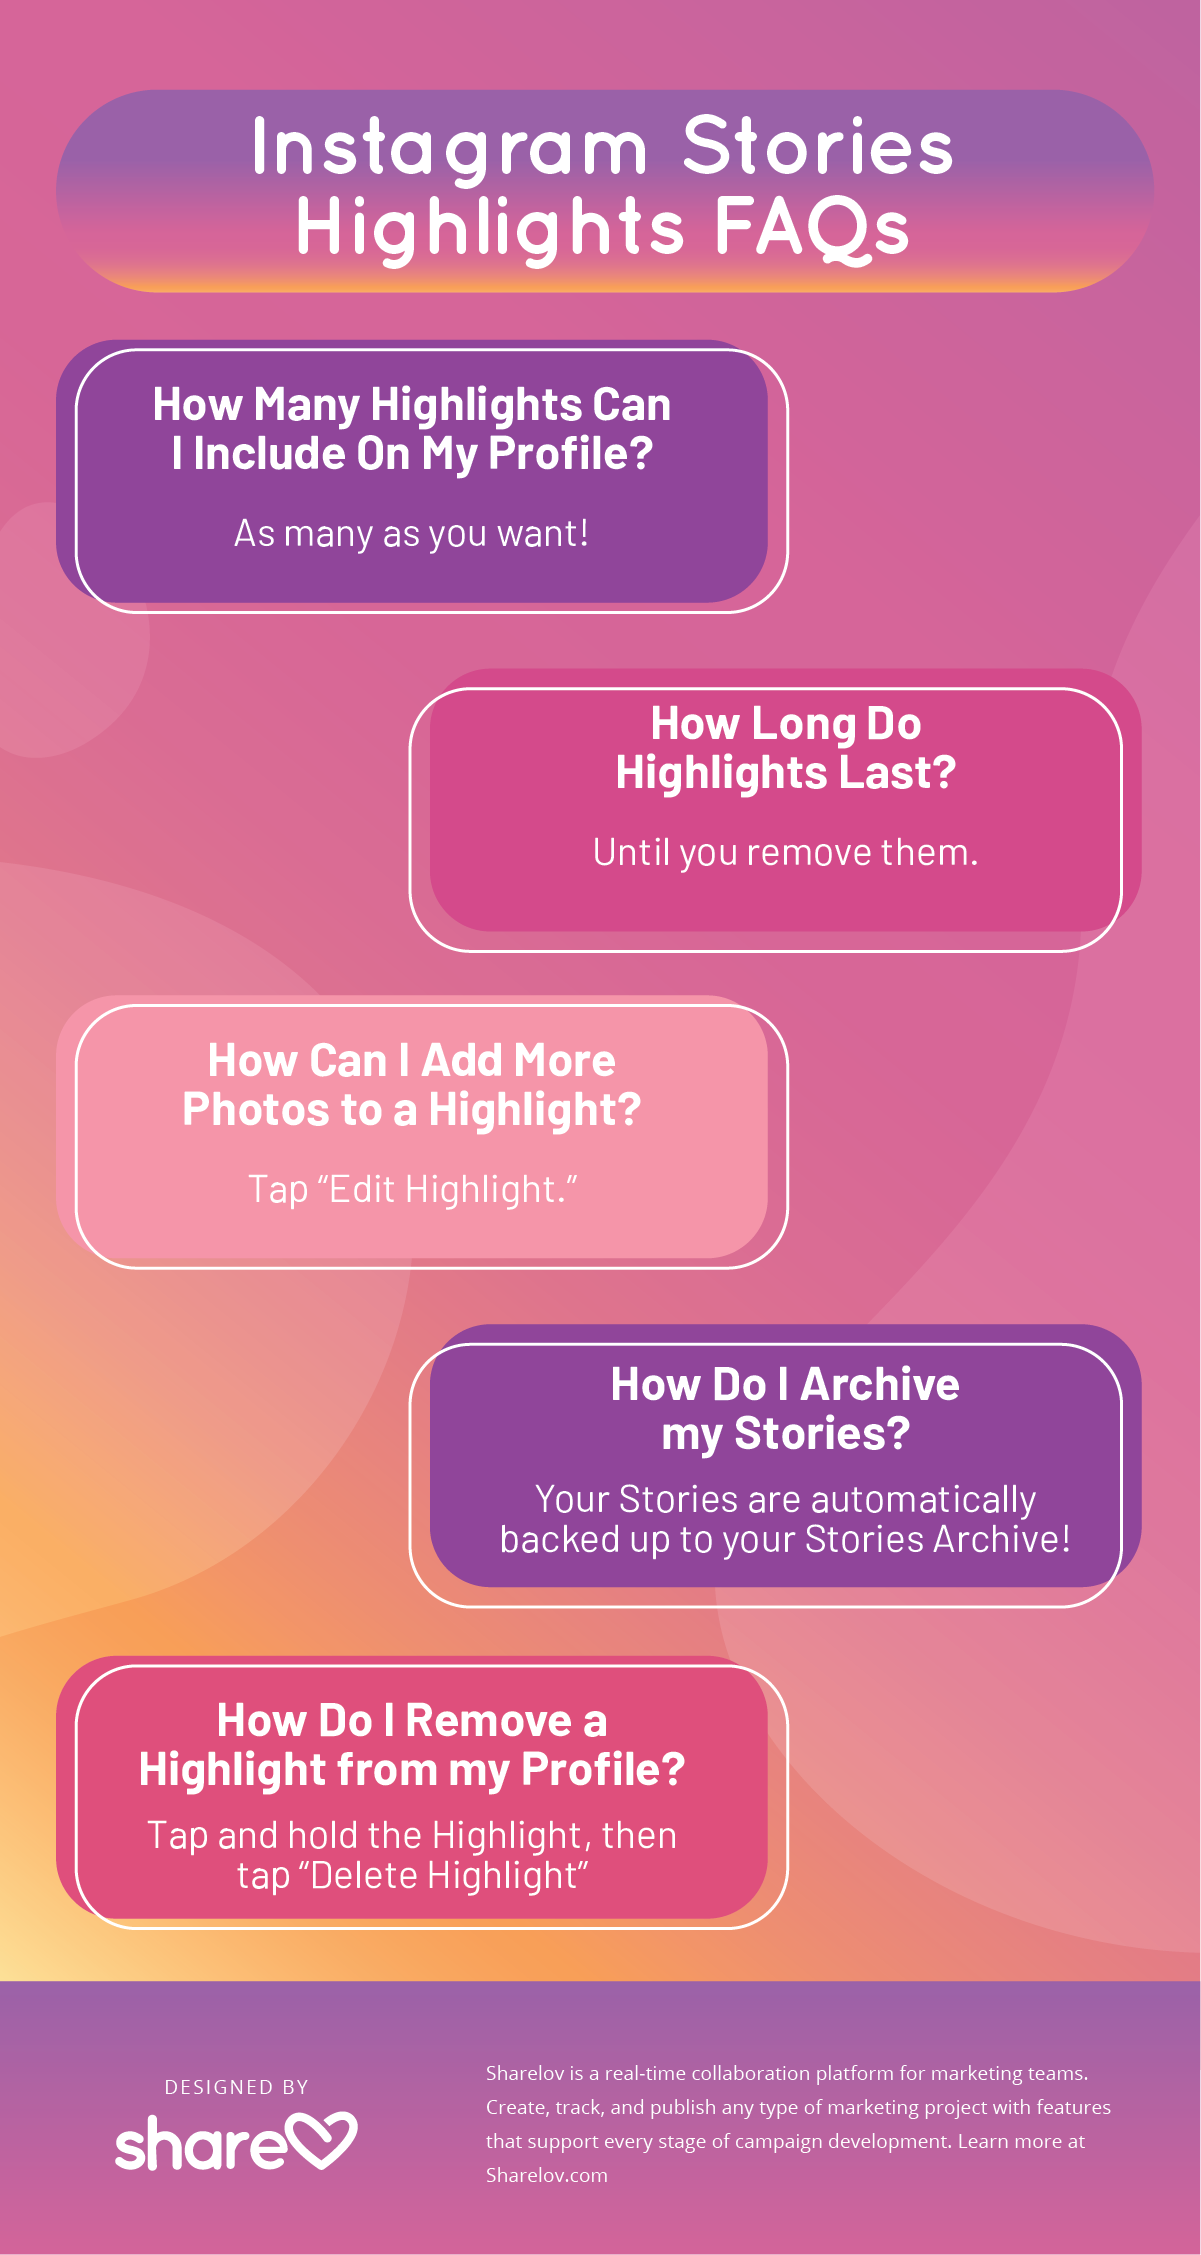 Instagram Stories Highlights FAQs